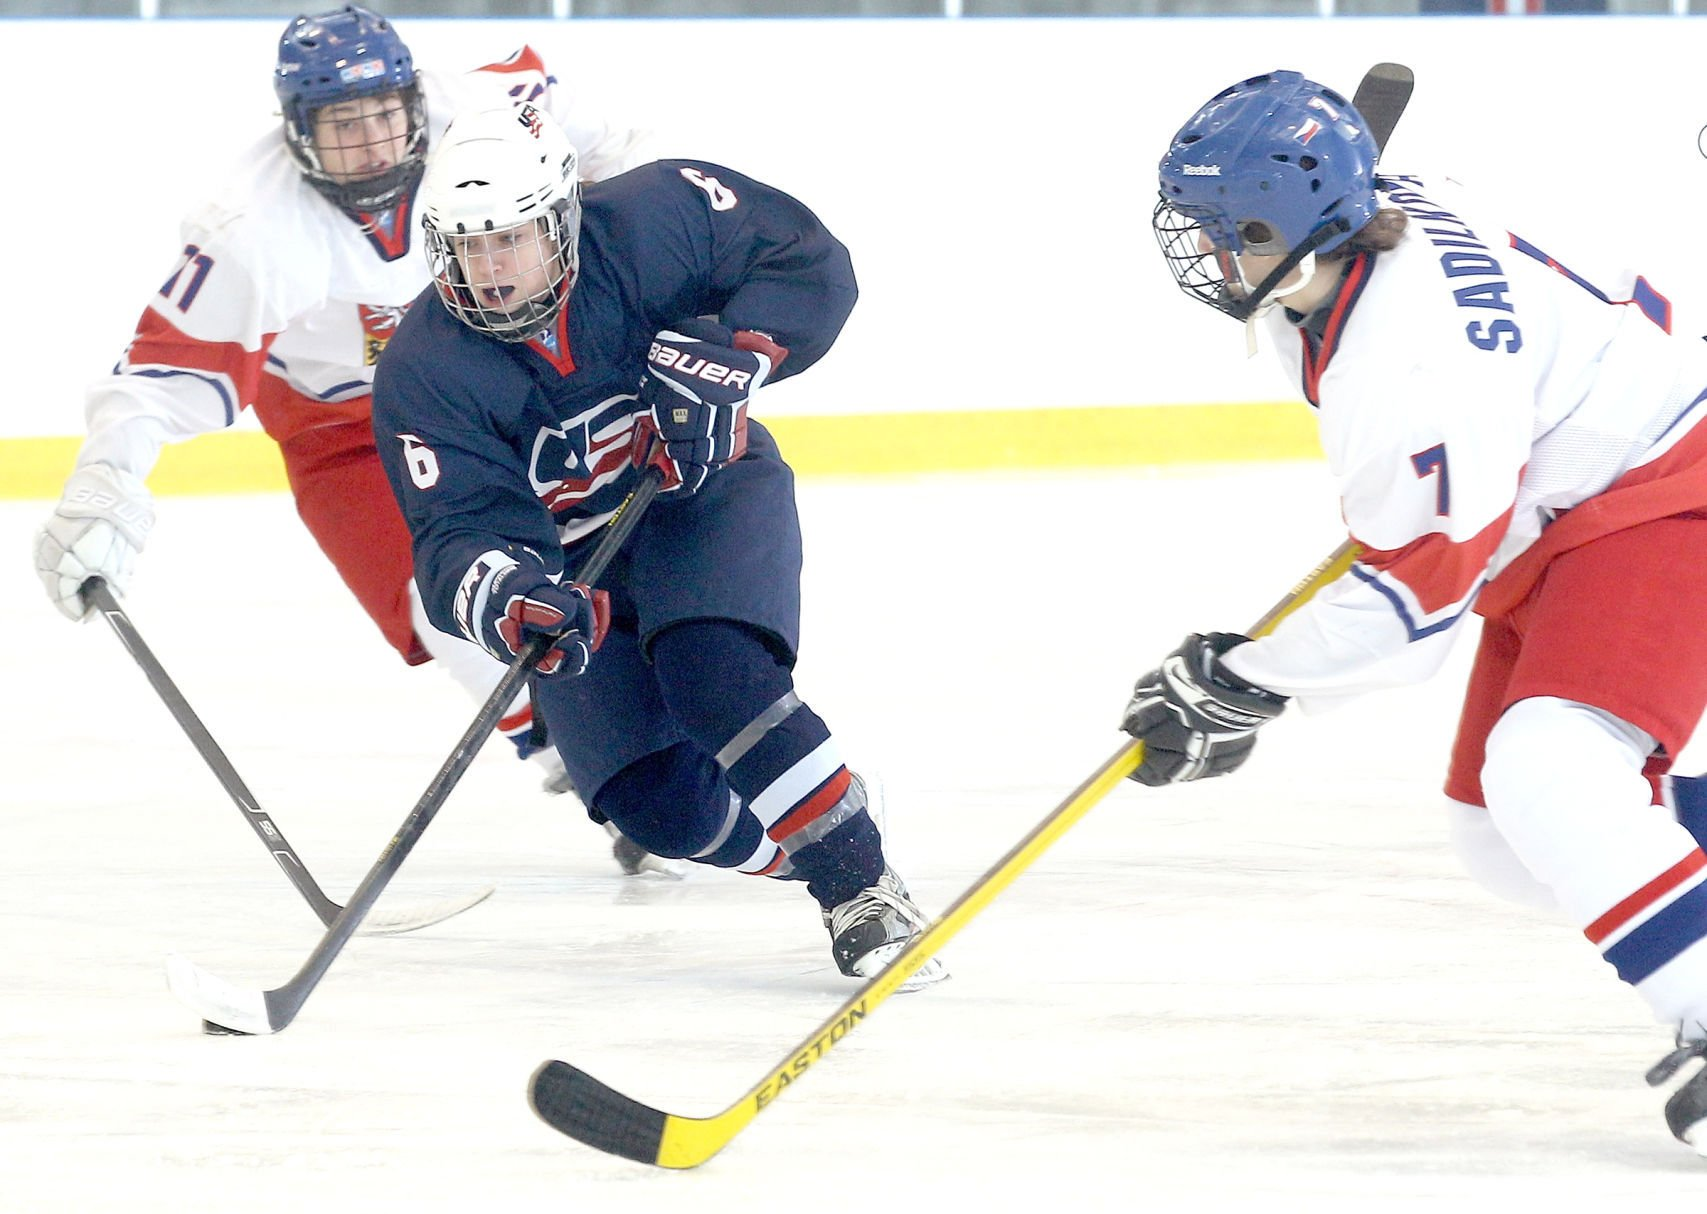 Pyeongchang: Chanhassen, MN's Olympic Hockey Player Likes To 'Dream Big'